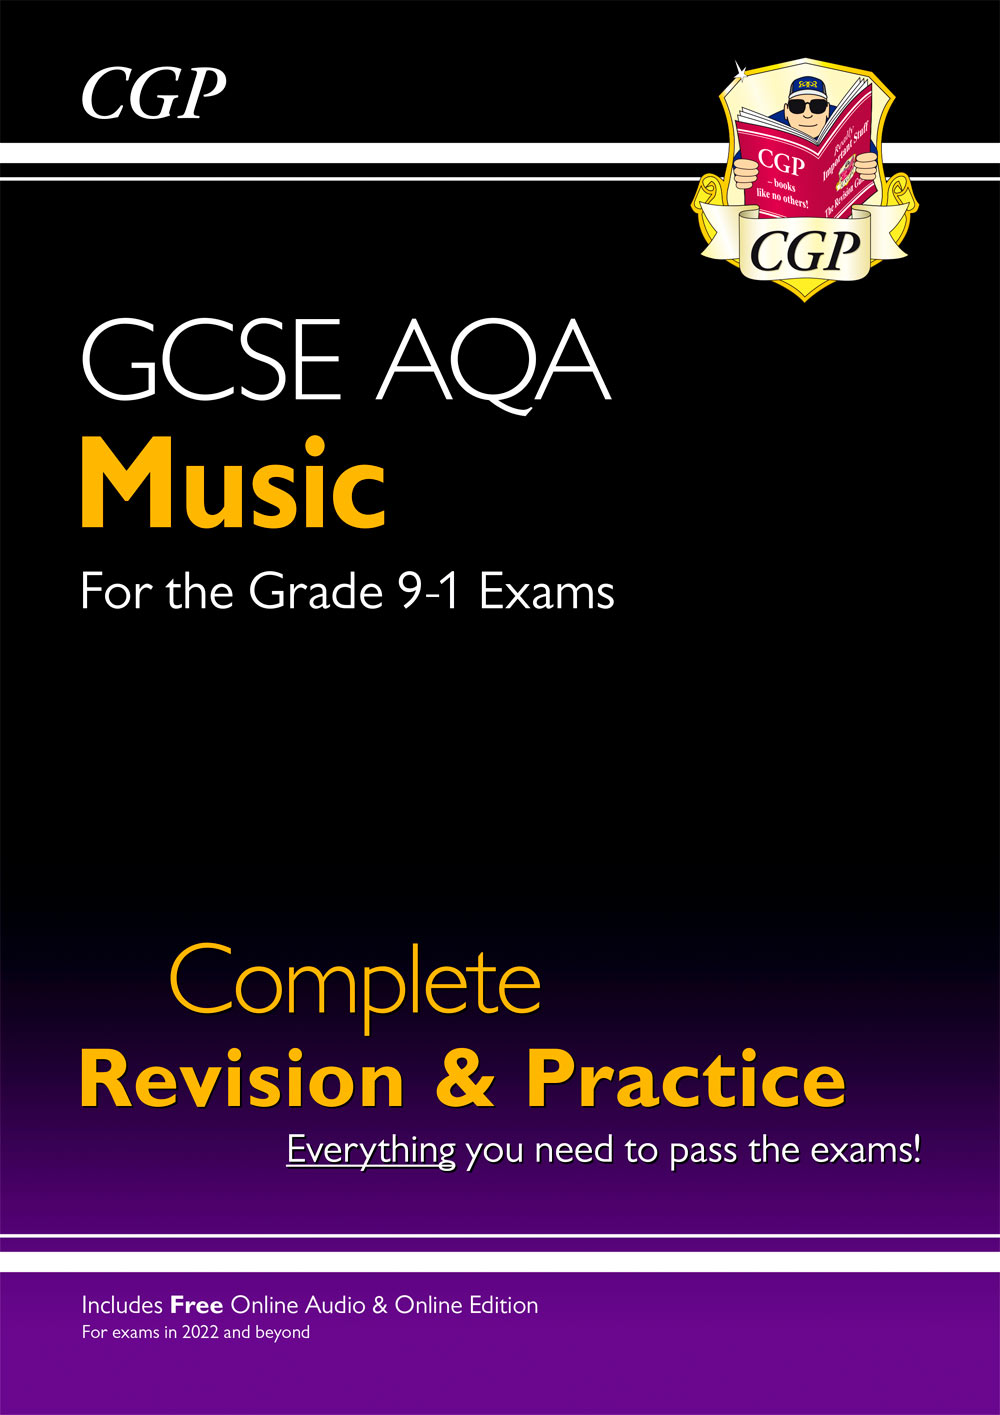 Aqa gcse music coursework dangerous breeds of dogs should be banned essay